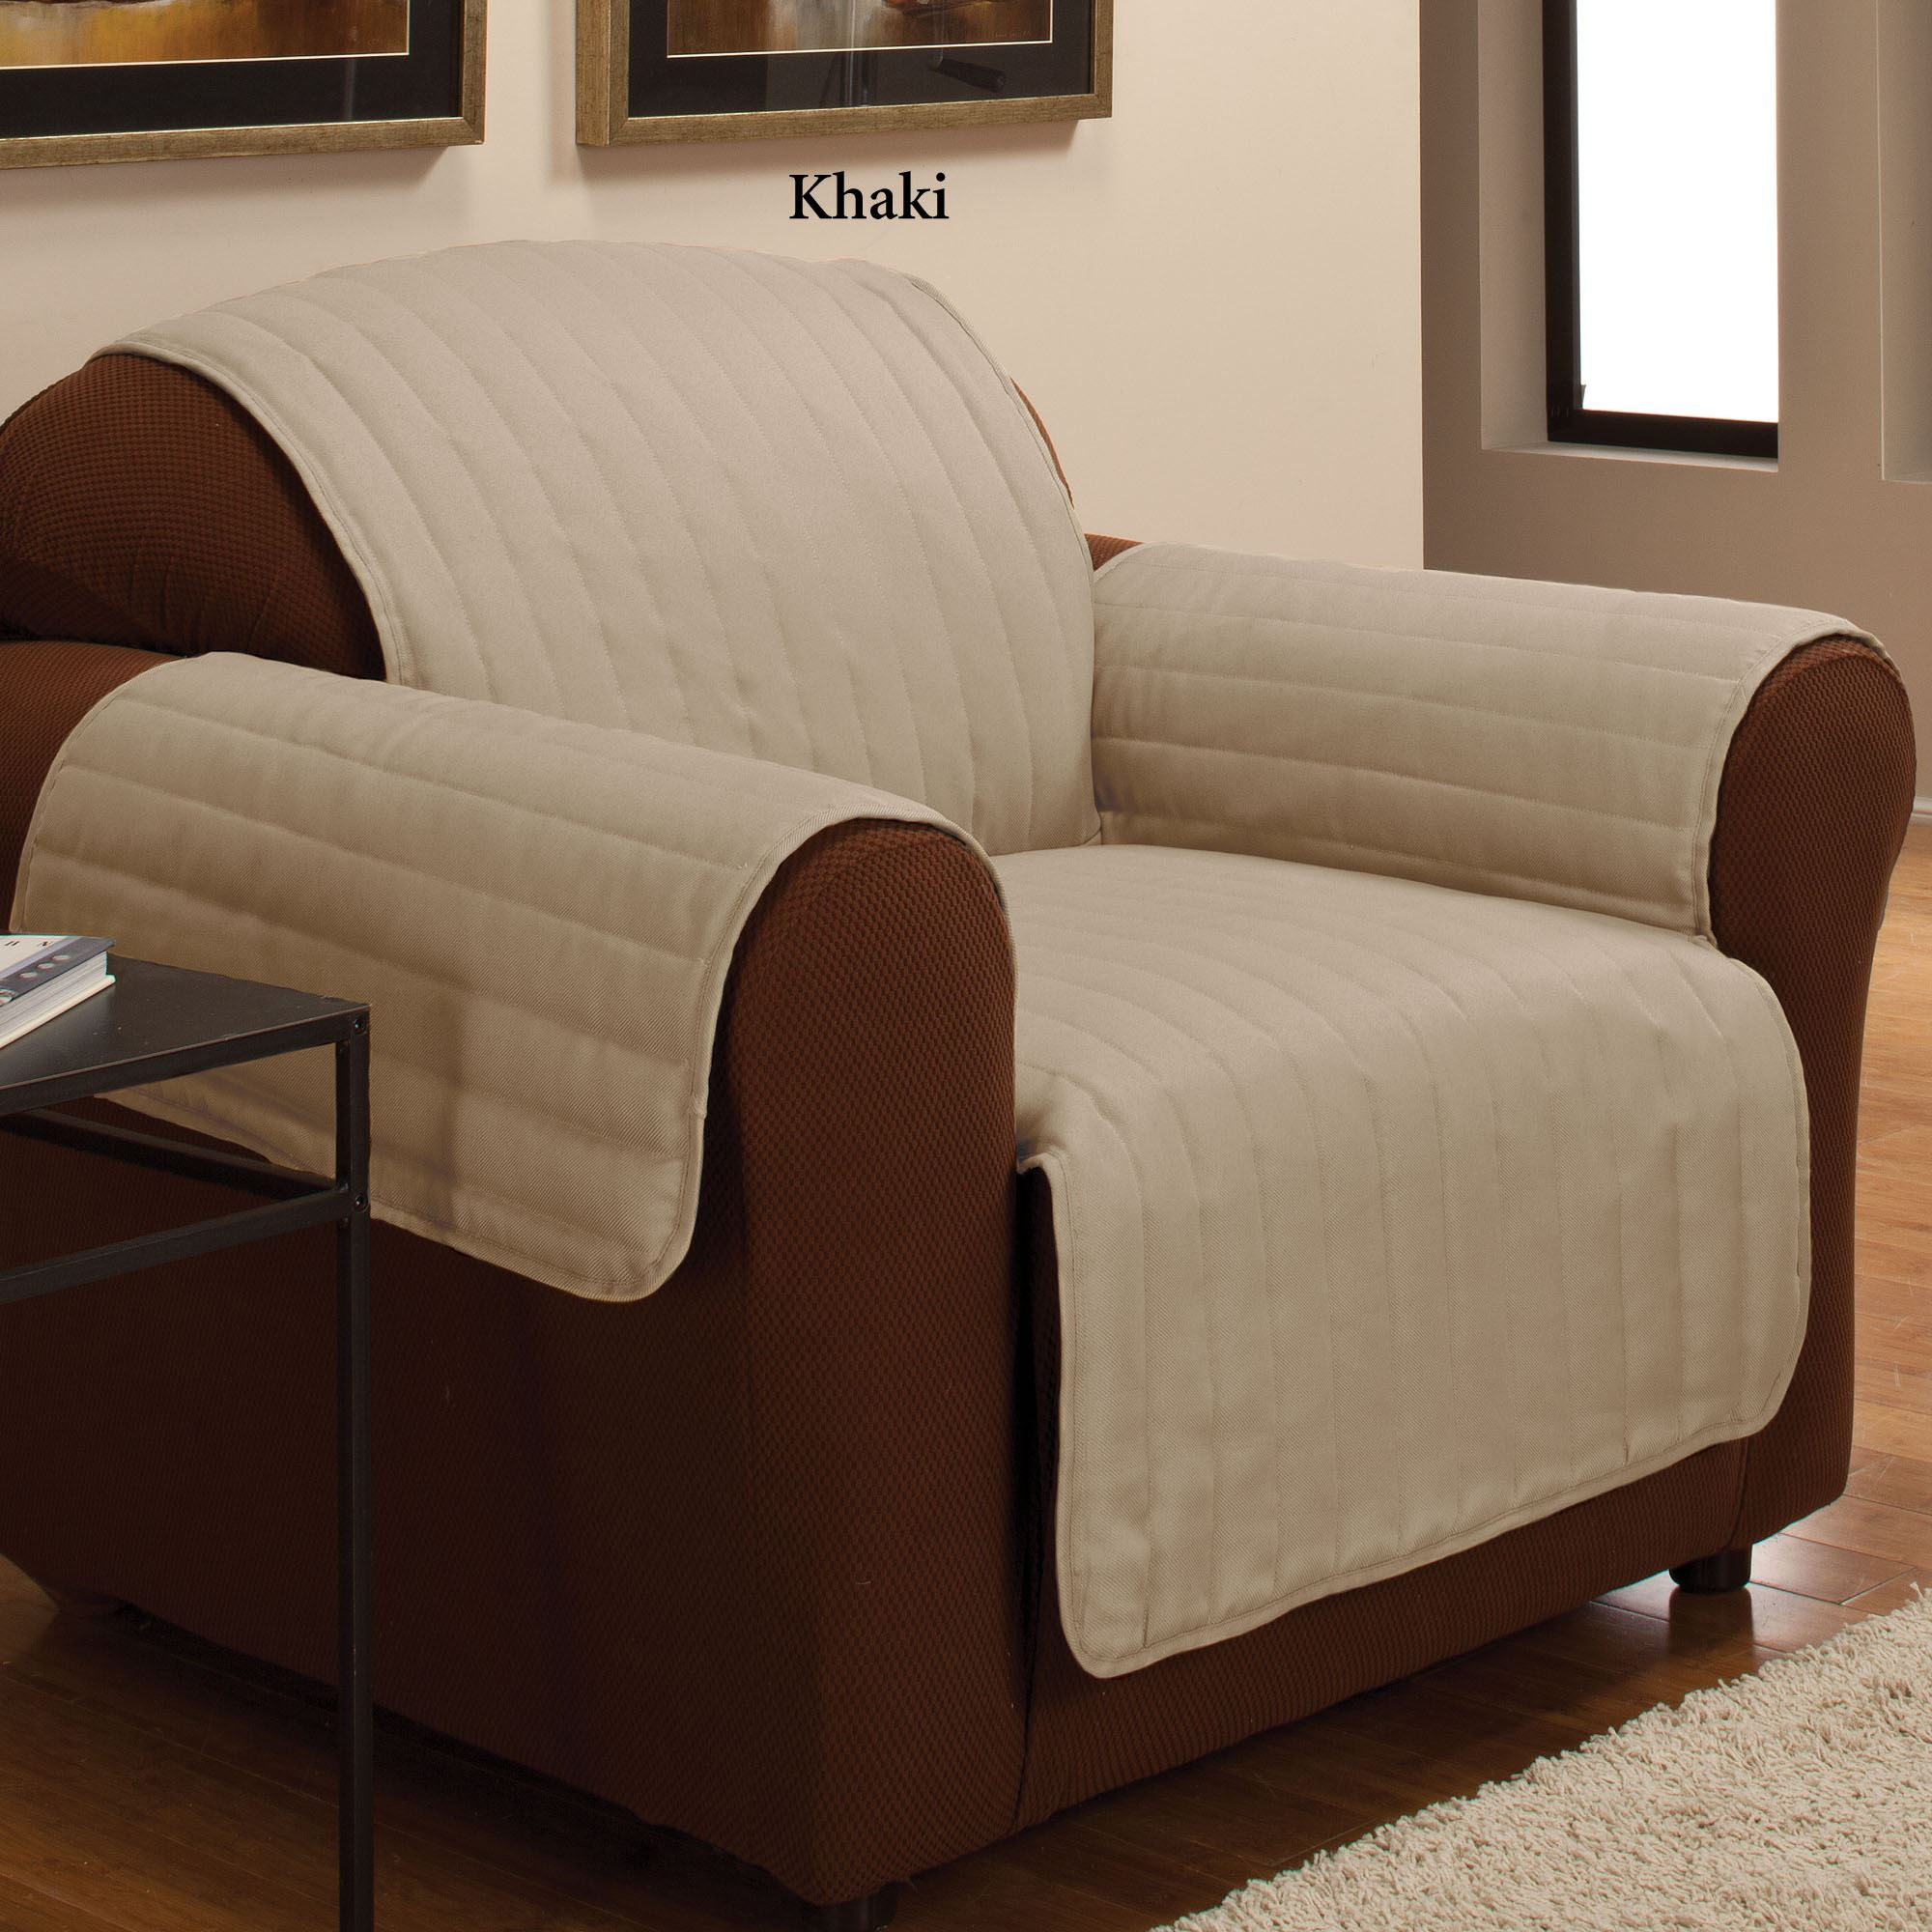 Twill pet furniture cover for Sofa xxl 7 plazas